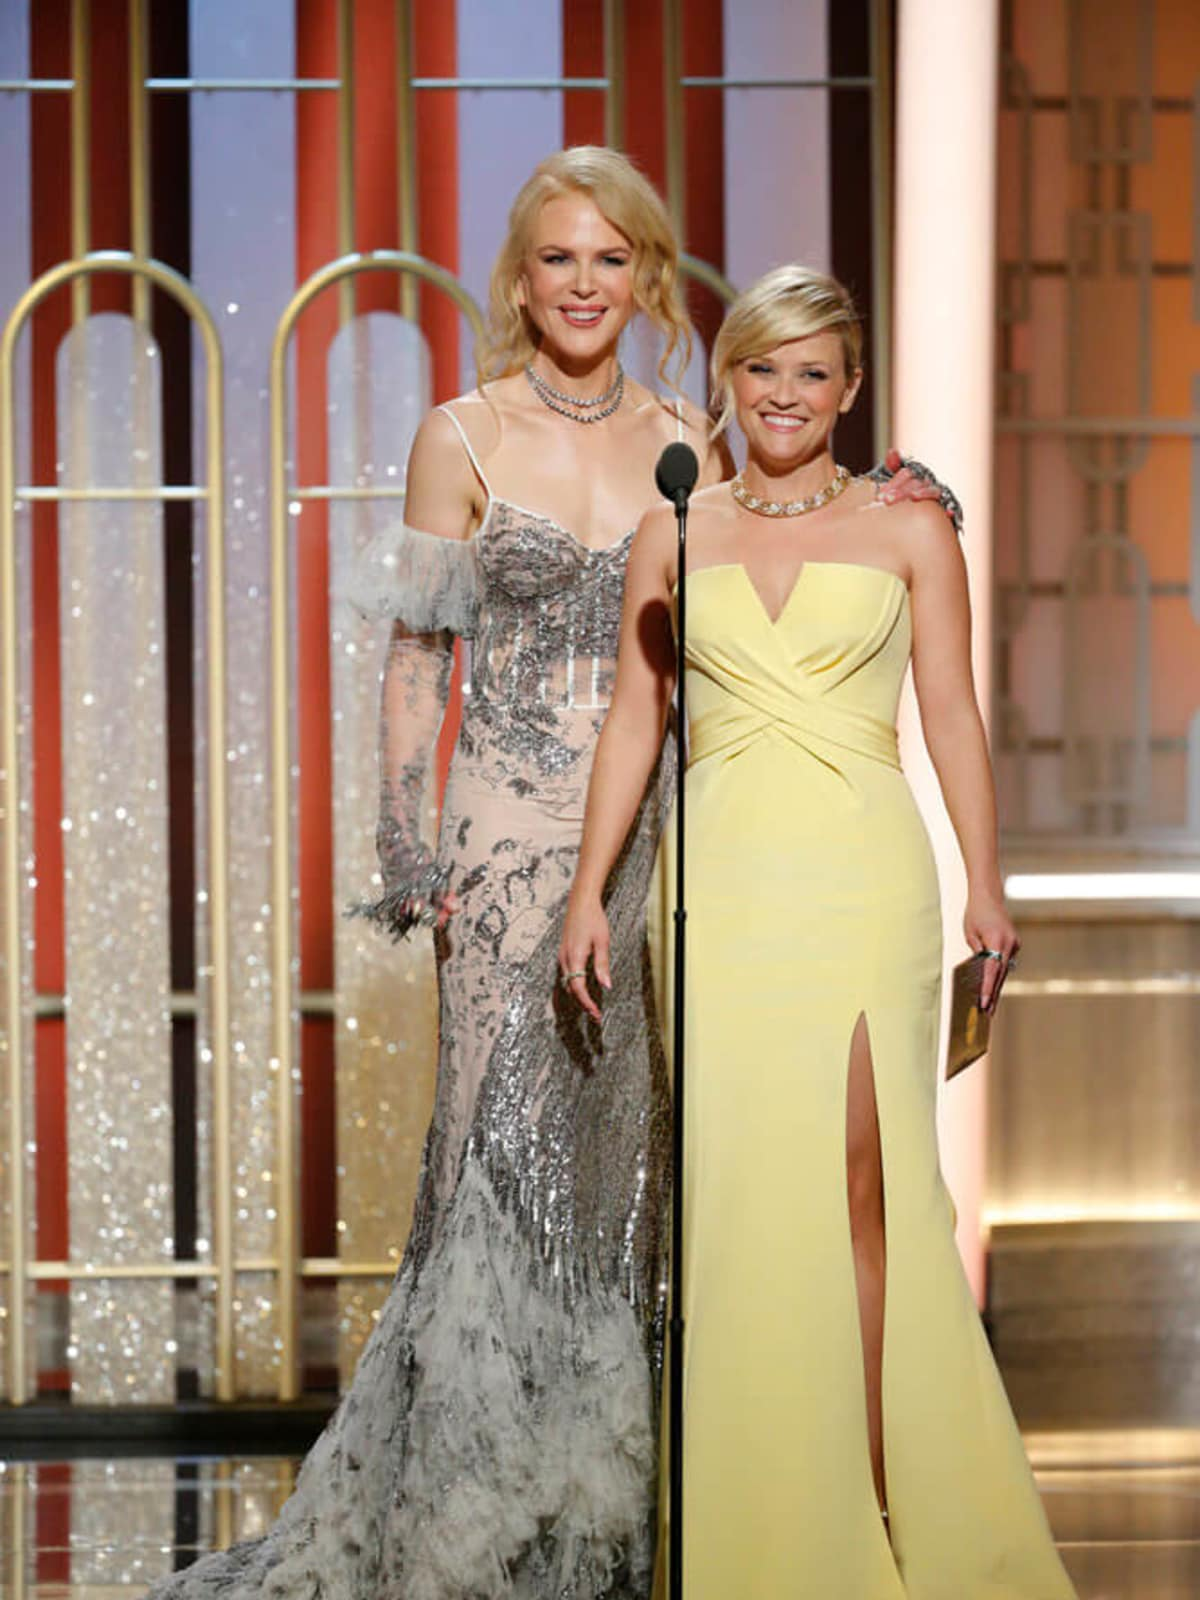 Nicole Kidman, Reese Witherspoon at Golden Globes